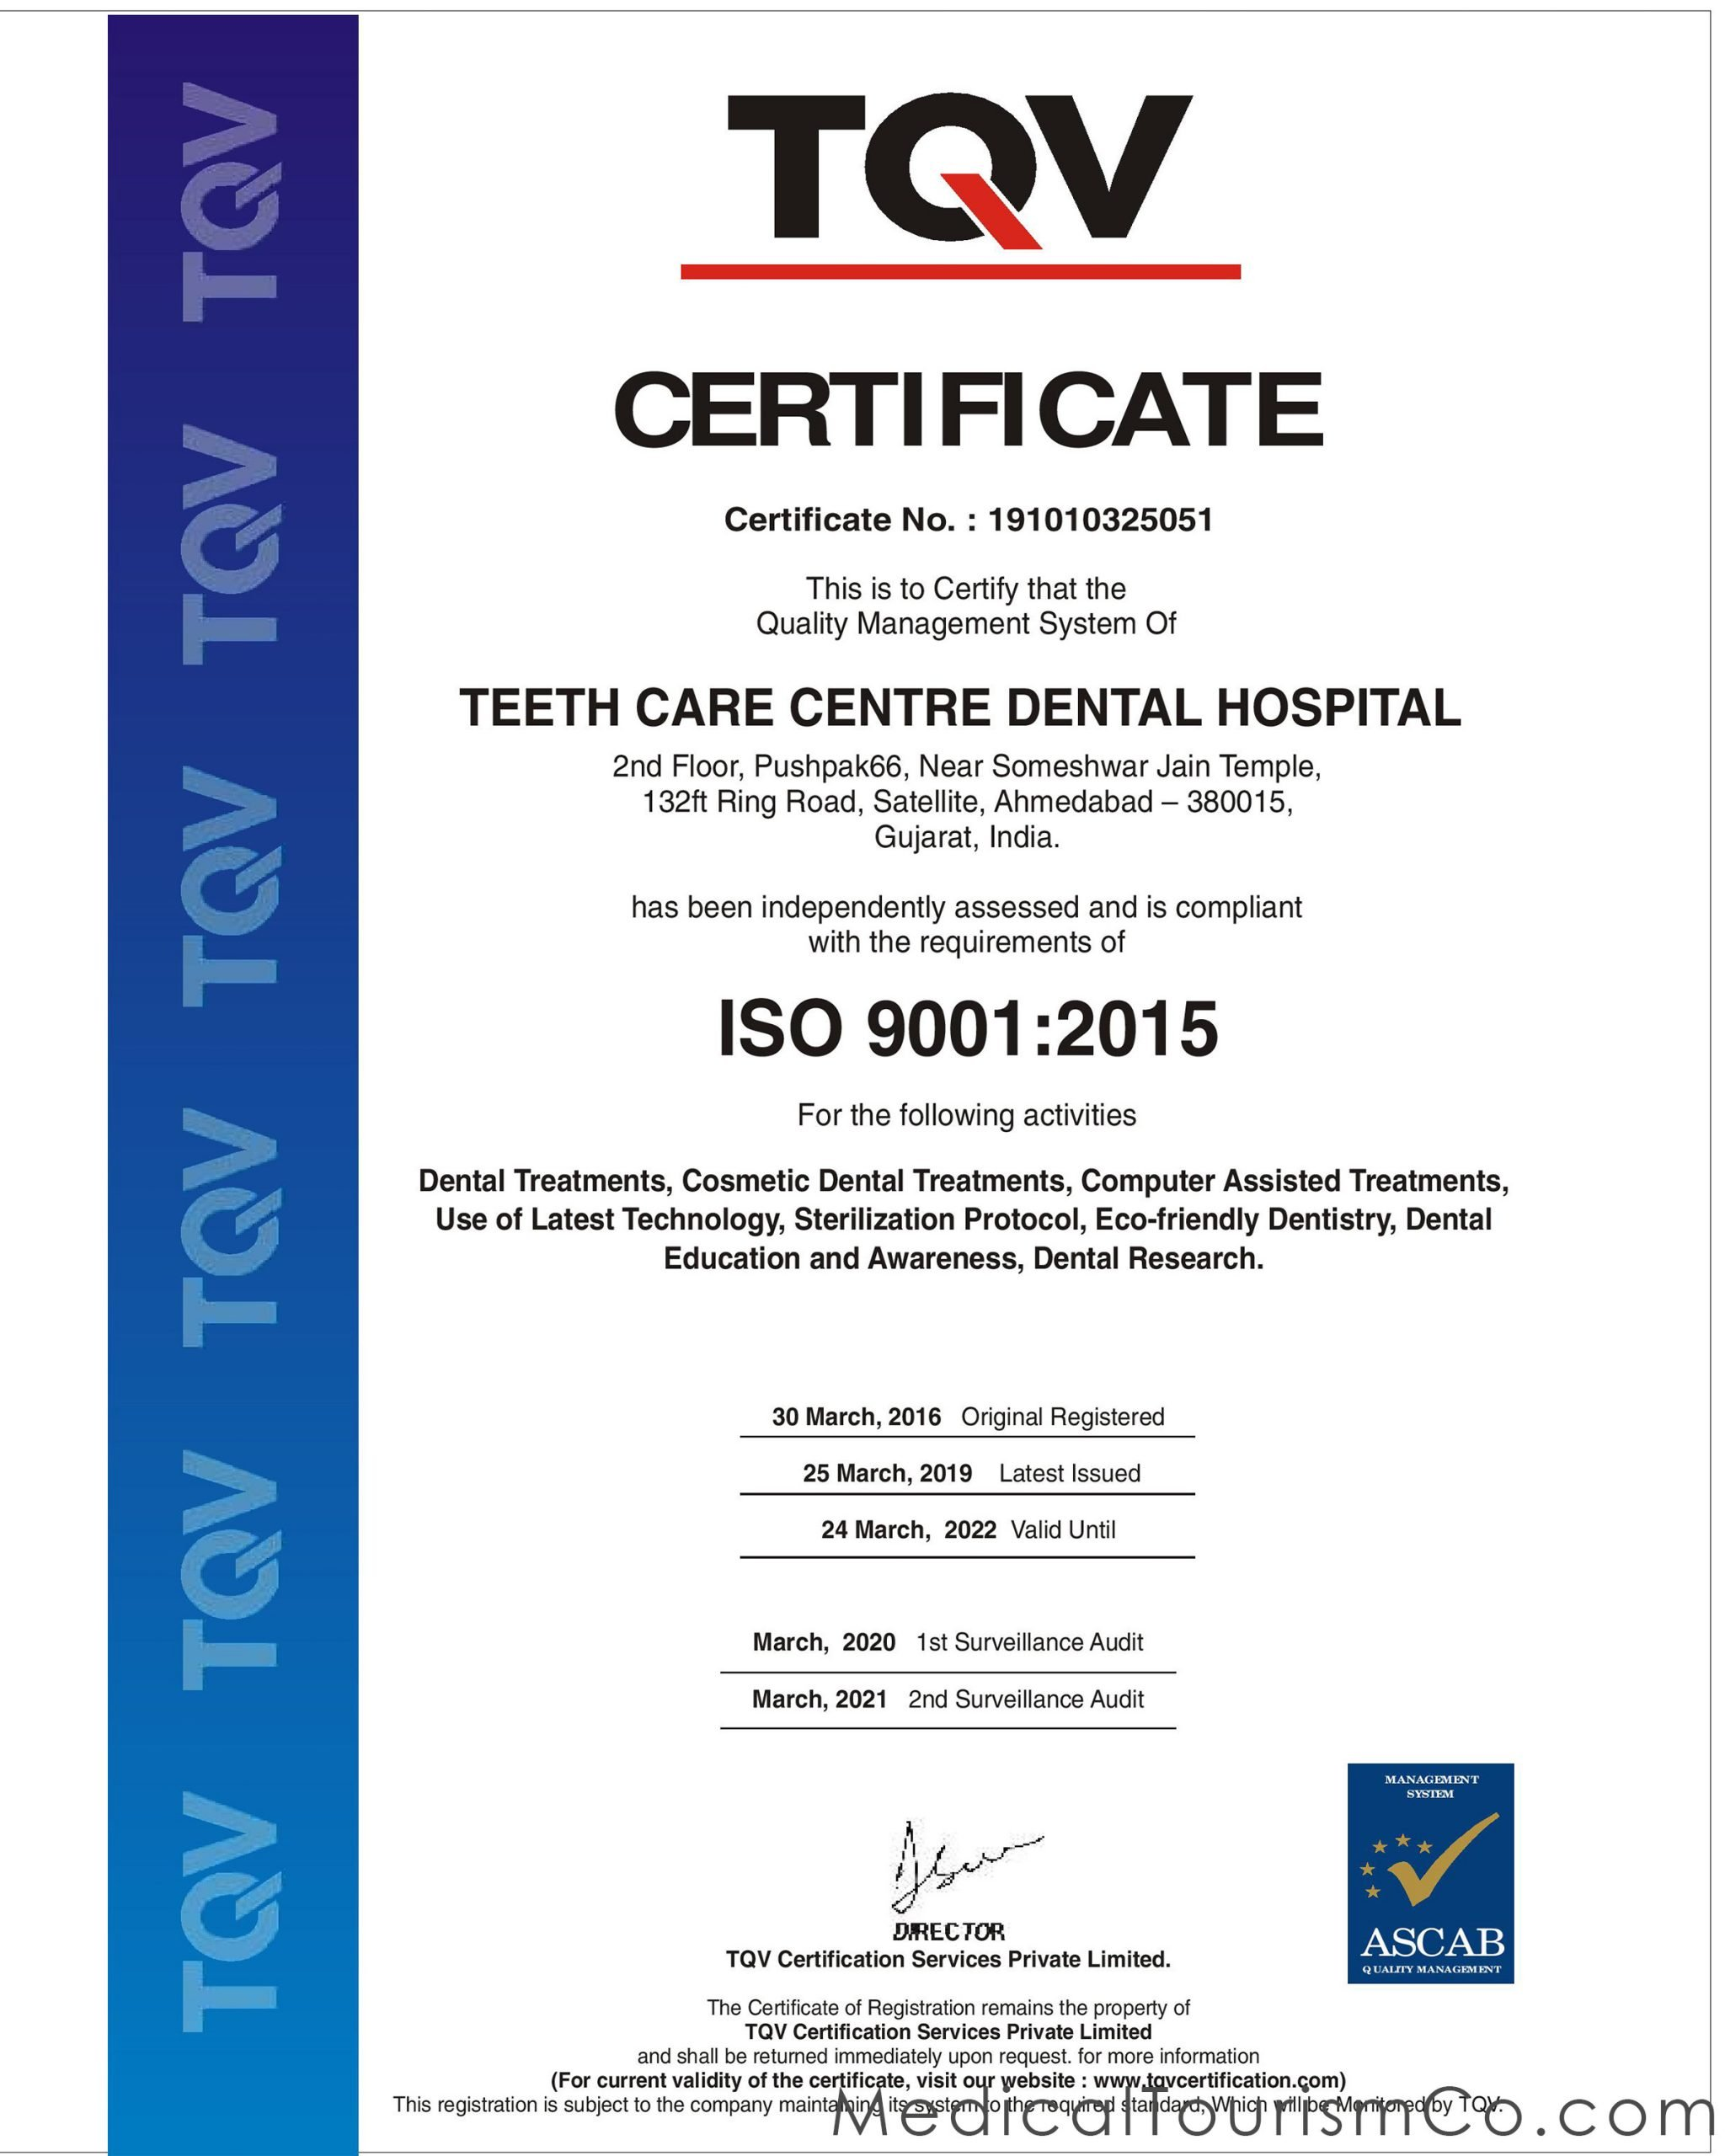 Teeth Care Center ISO Certification-Dental Implants in Ahmedabad